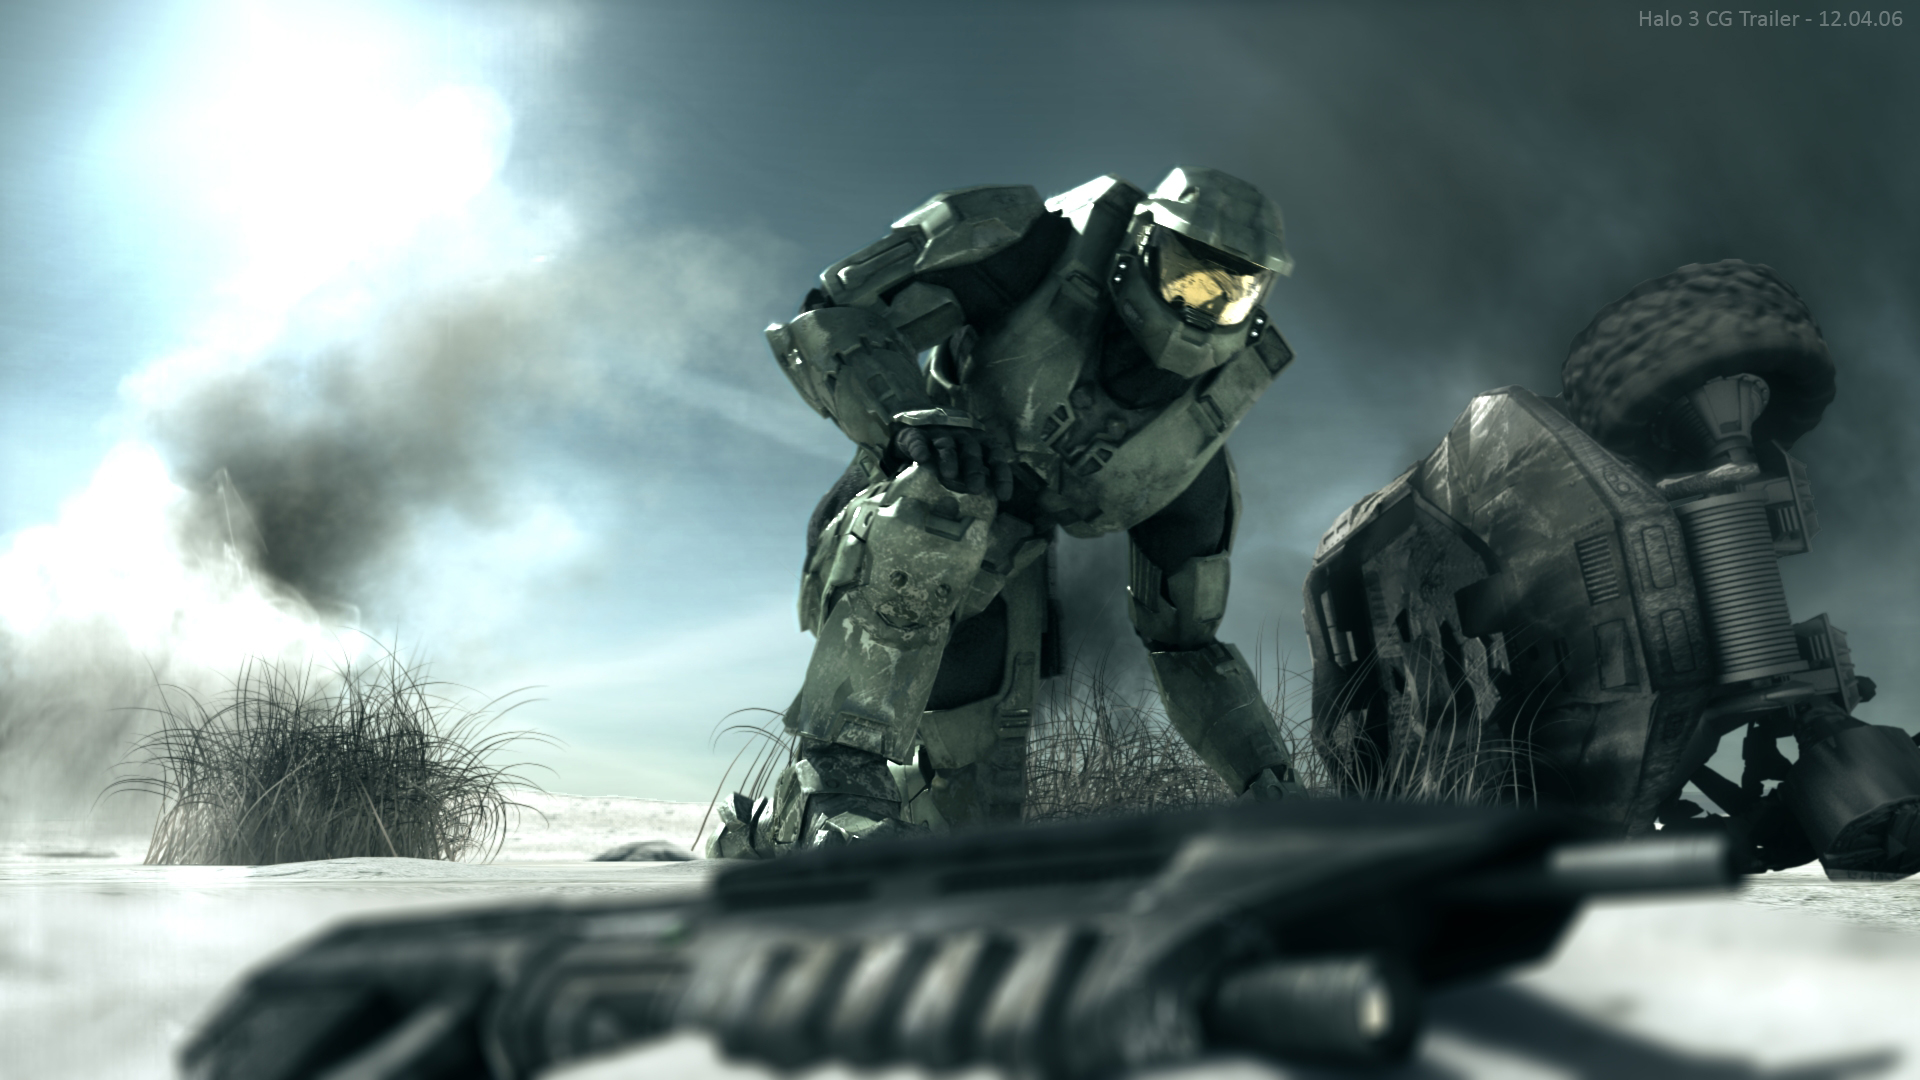 Finish The Fight: Has anything surpassed Halo 3's hype? - NeoGAF